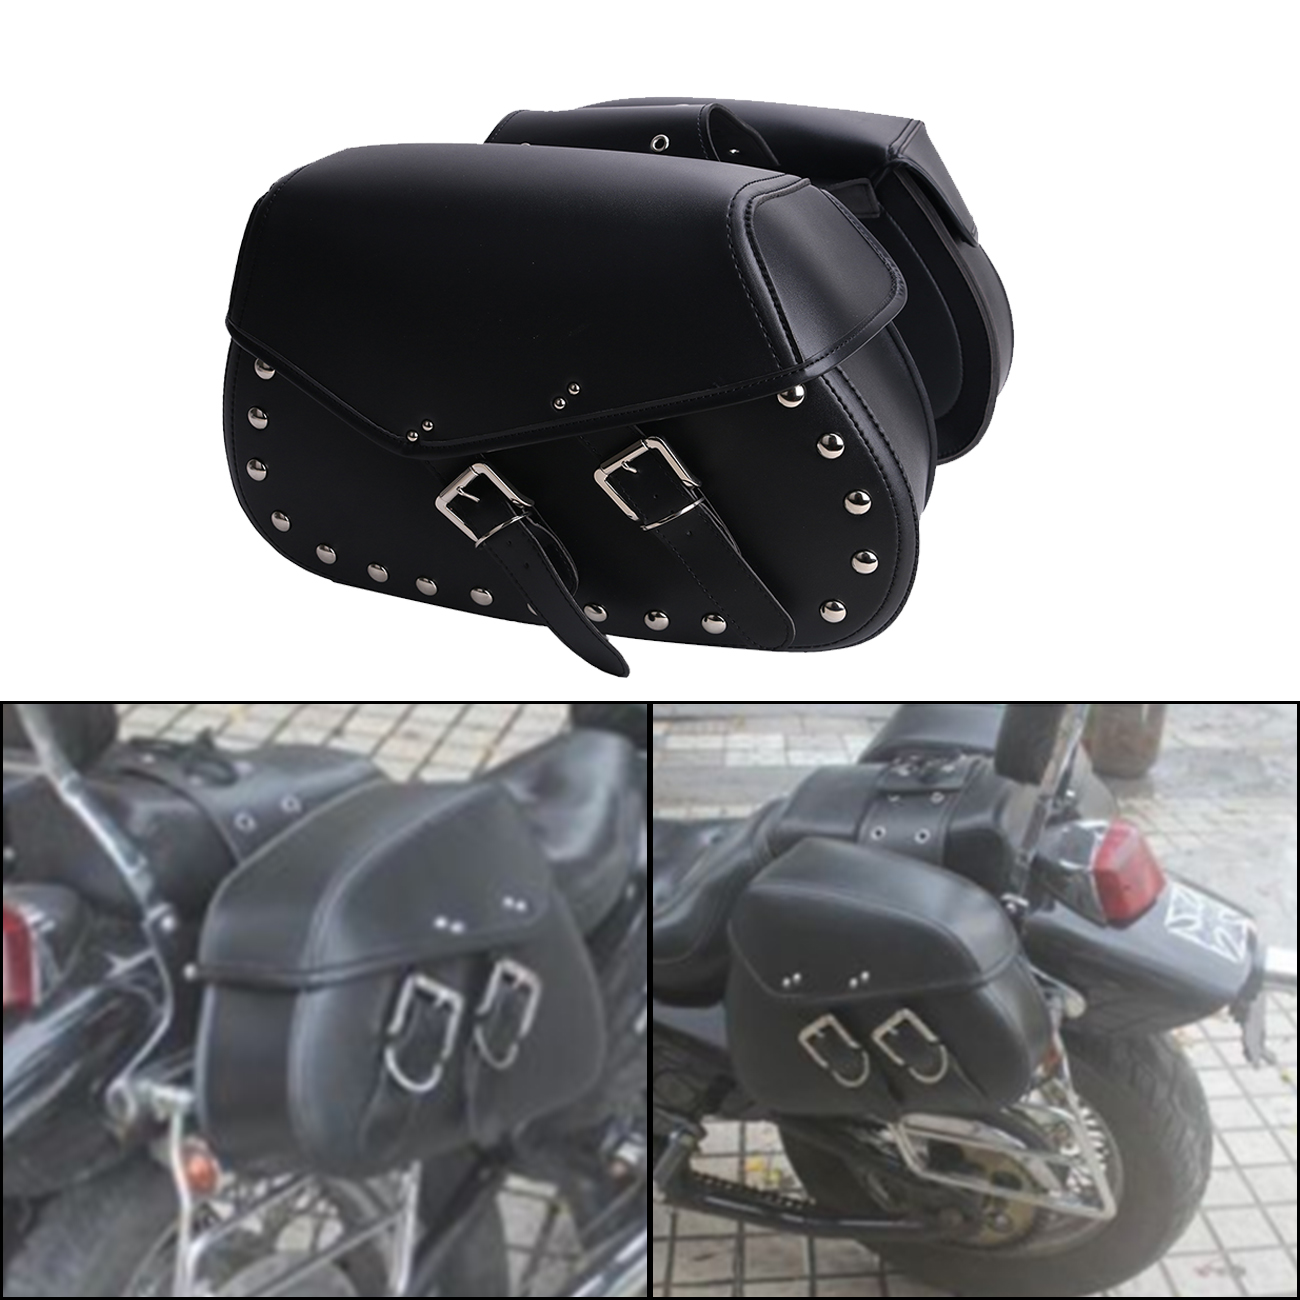 2x Punk Black Leather Rivet Motorcycle Saddle Bag Saddlebag Rider Motorbike Luggage For Harley Yamaha Honda Universal MBH258 cucyma motorcycle bag waterproof moto bag motorbike saddle bags saddle long distance travel bag oil travel luggage case